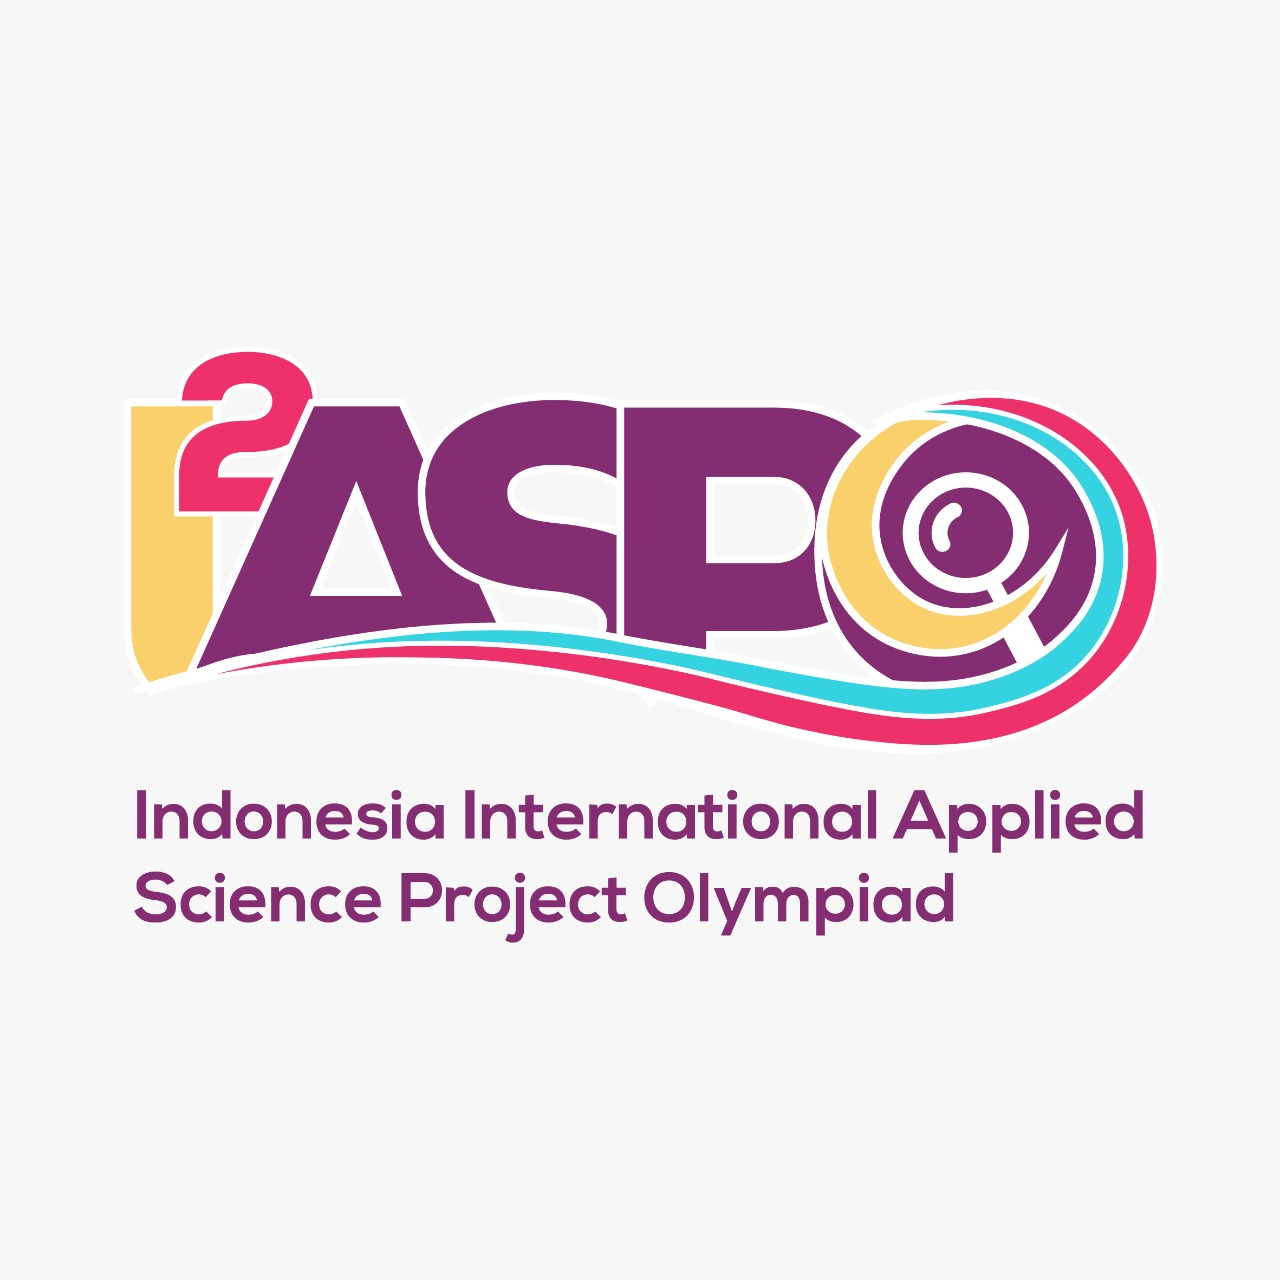 Indonesia International Applied Science Project Olympiad